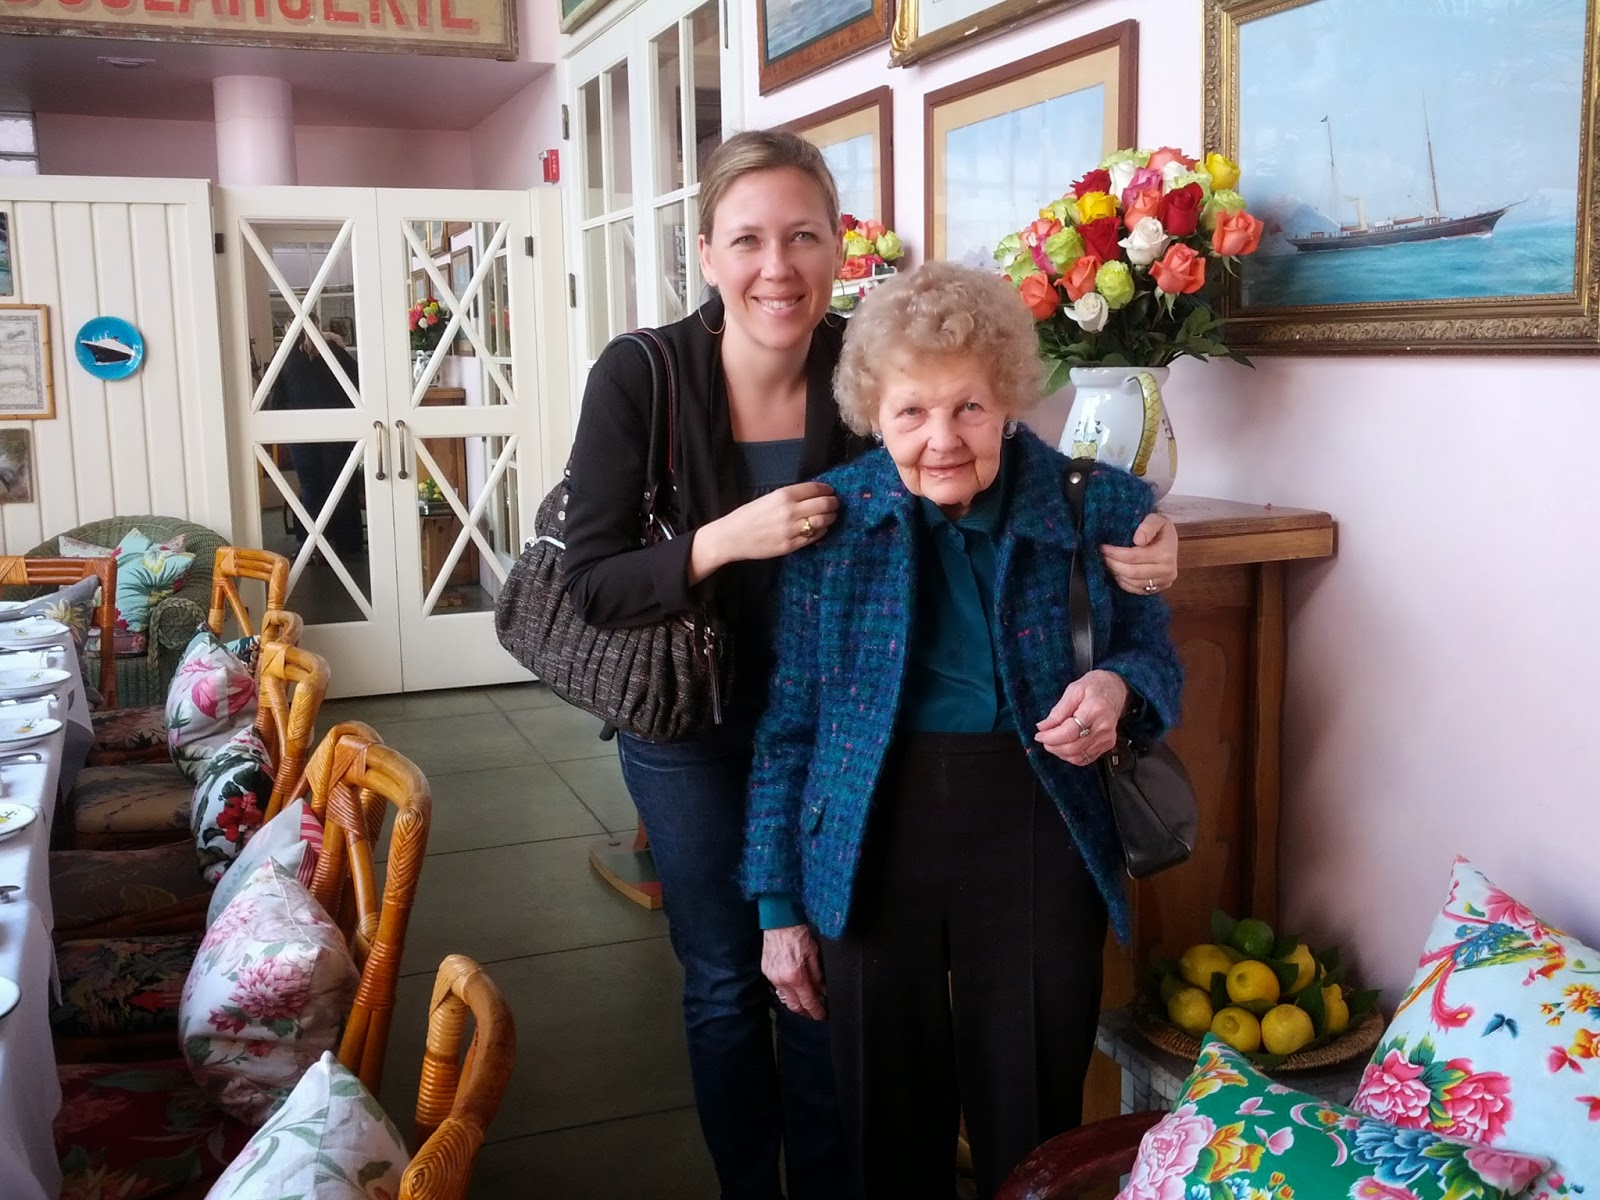 Veronica with her grandmother in California, January 2013